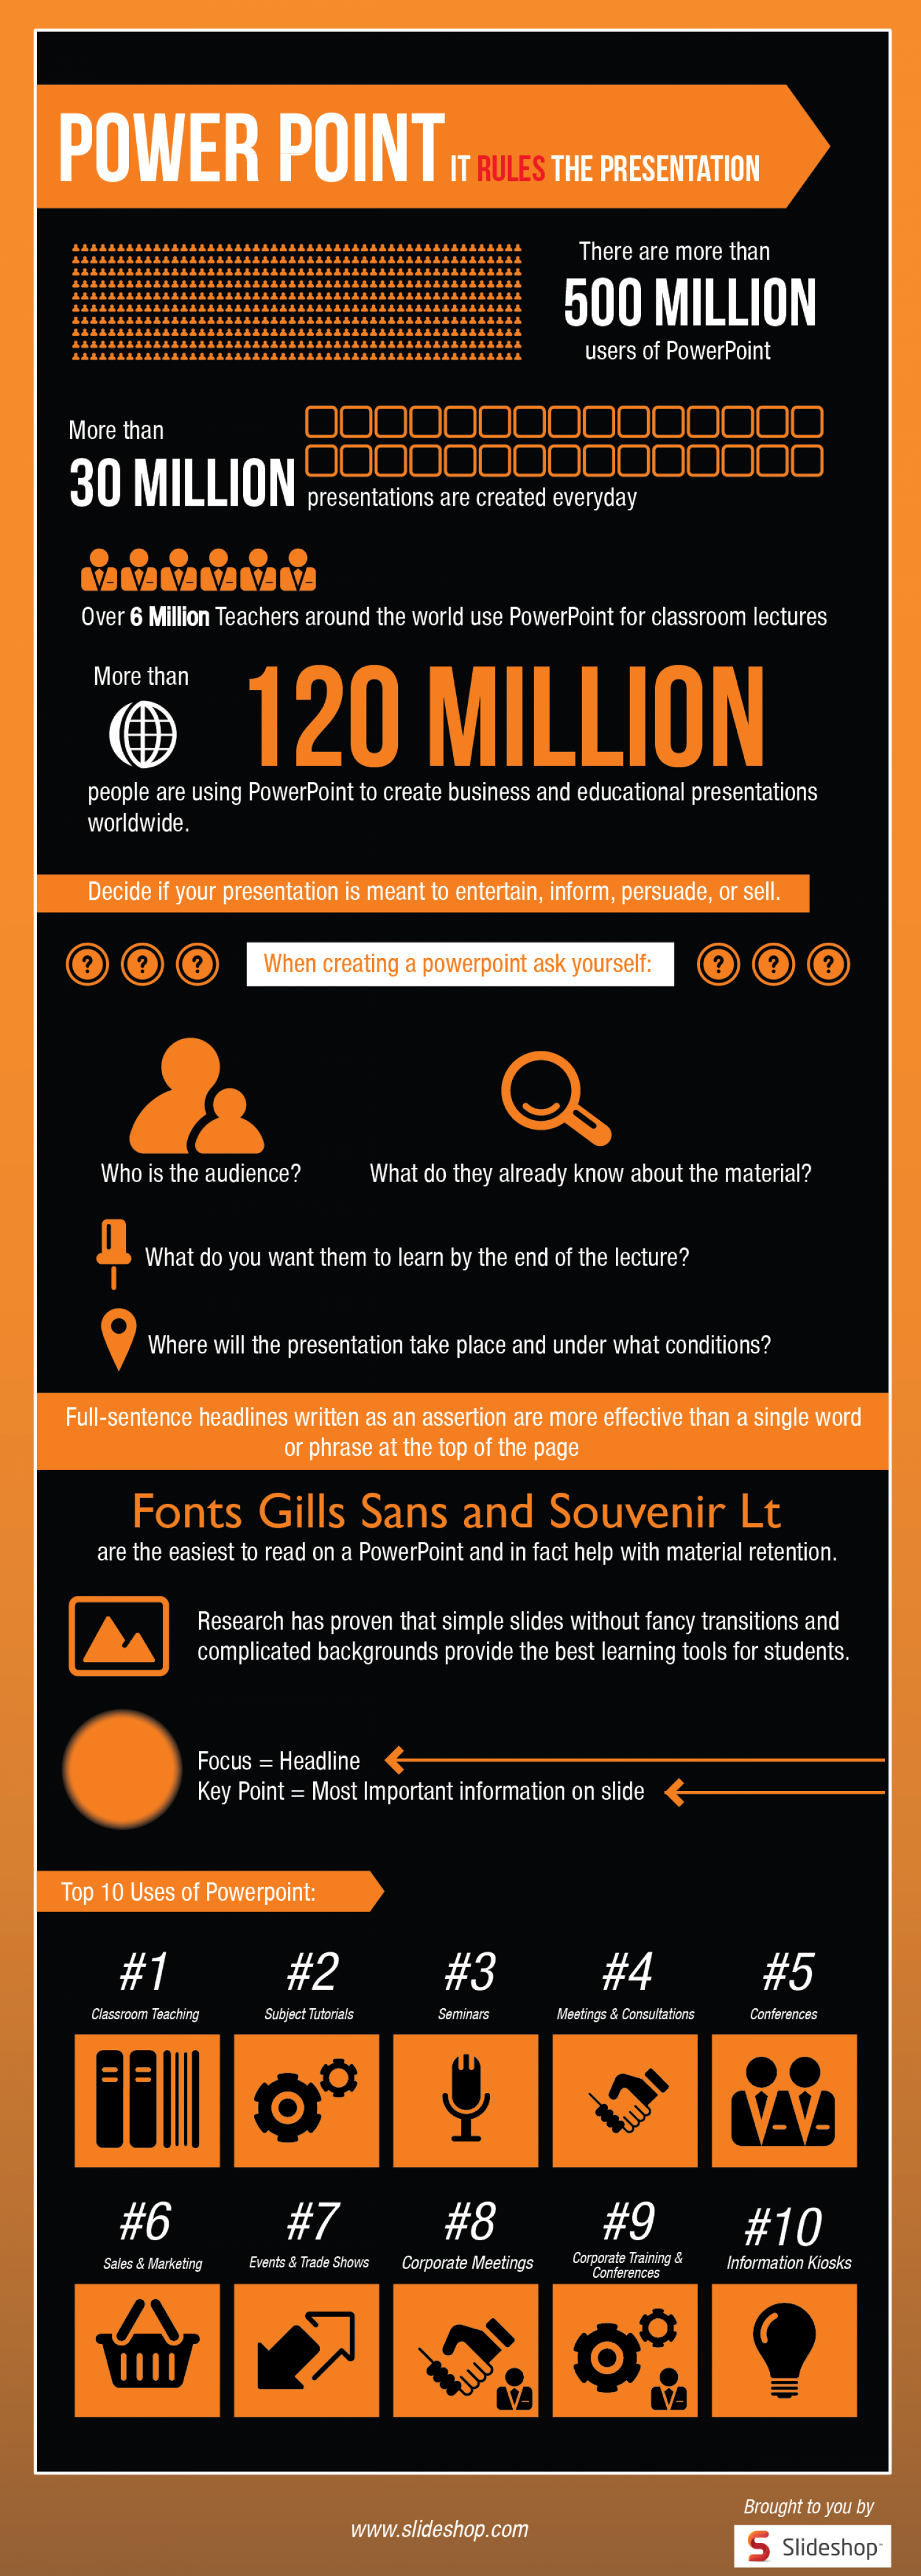 PowerPoint: It Rules the Presentation Infographic